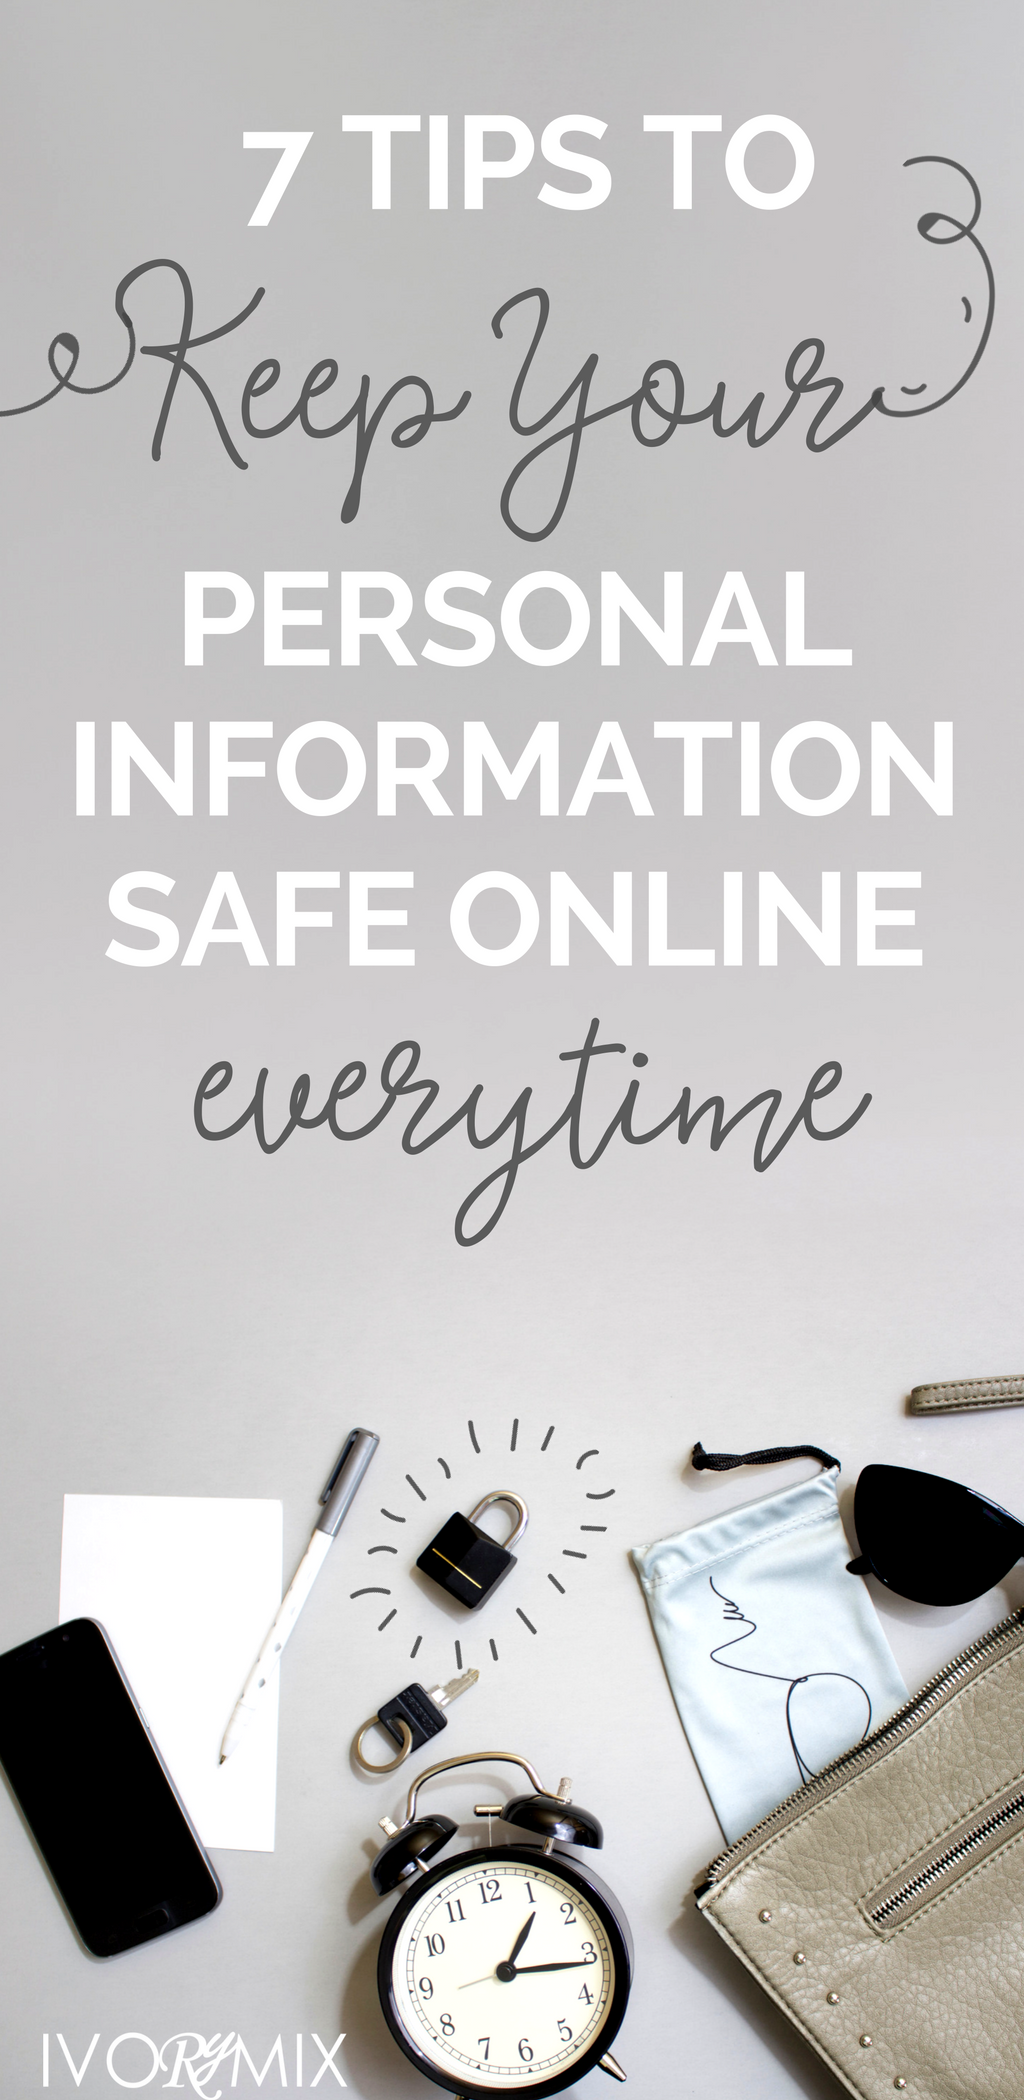 7 Tips To Keep Your Personal Information Safe Online